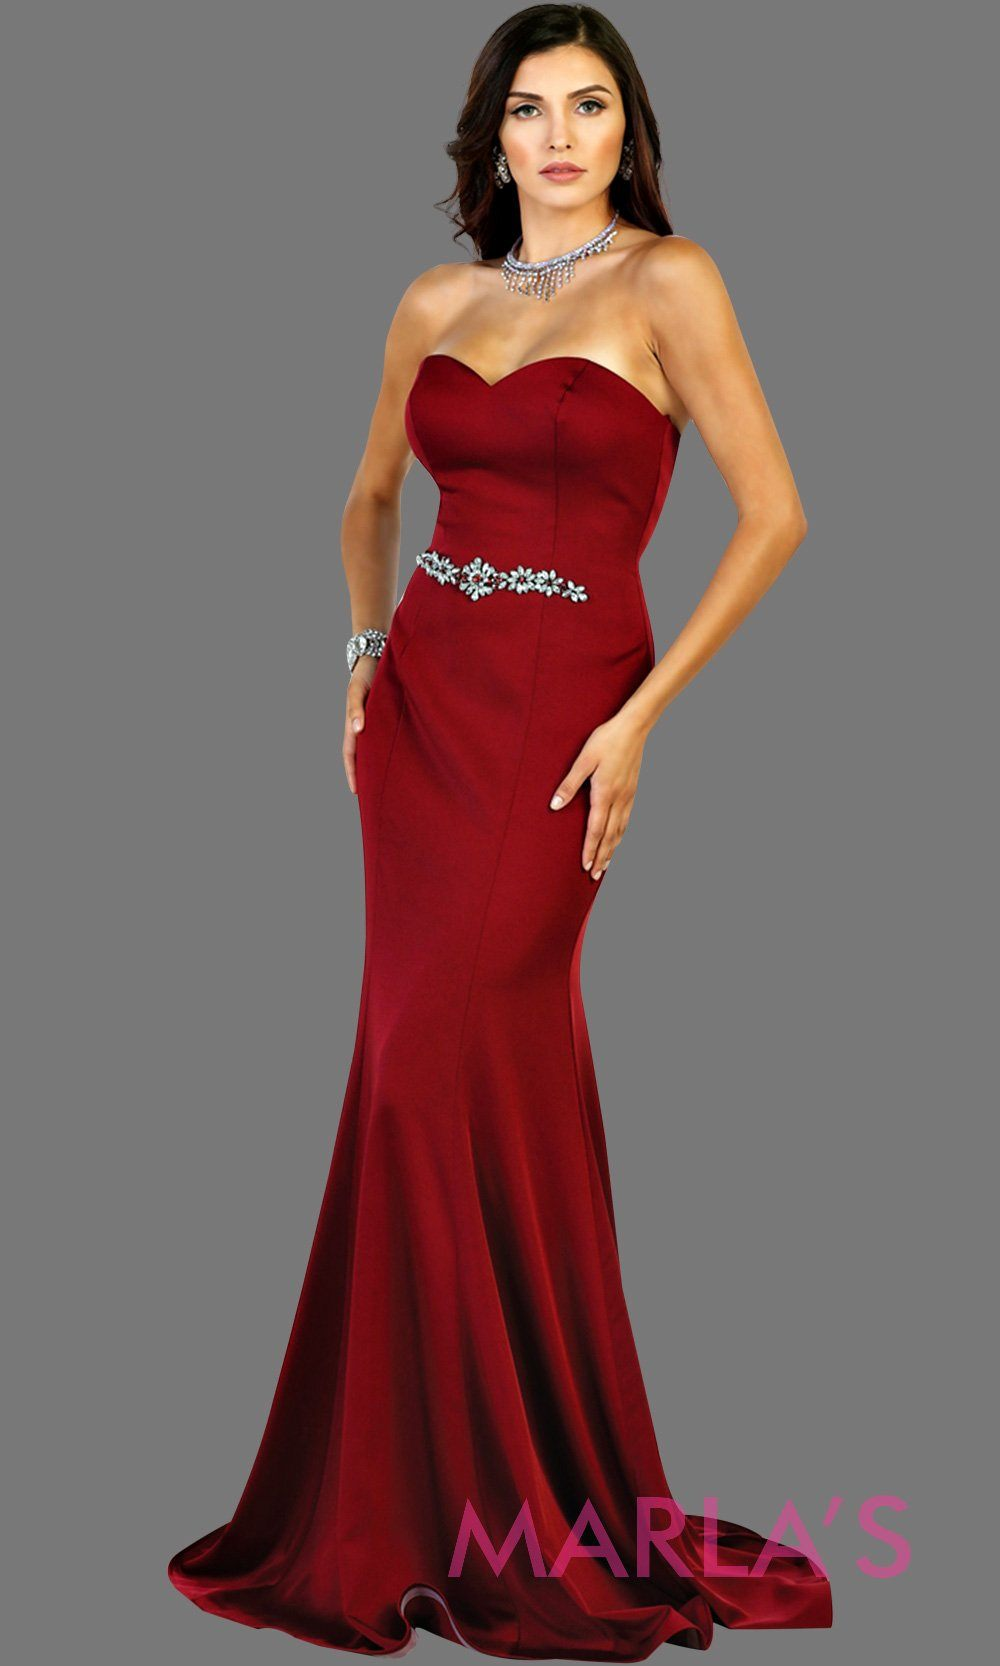 Long burgundy strapless fitted dress with rhinestone belt. Perfect dark red dress for prom, gala, bridesmaids,  formal party, wedding guest dresses, sleek and sexy party dress. Available in plus sizes.